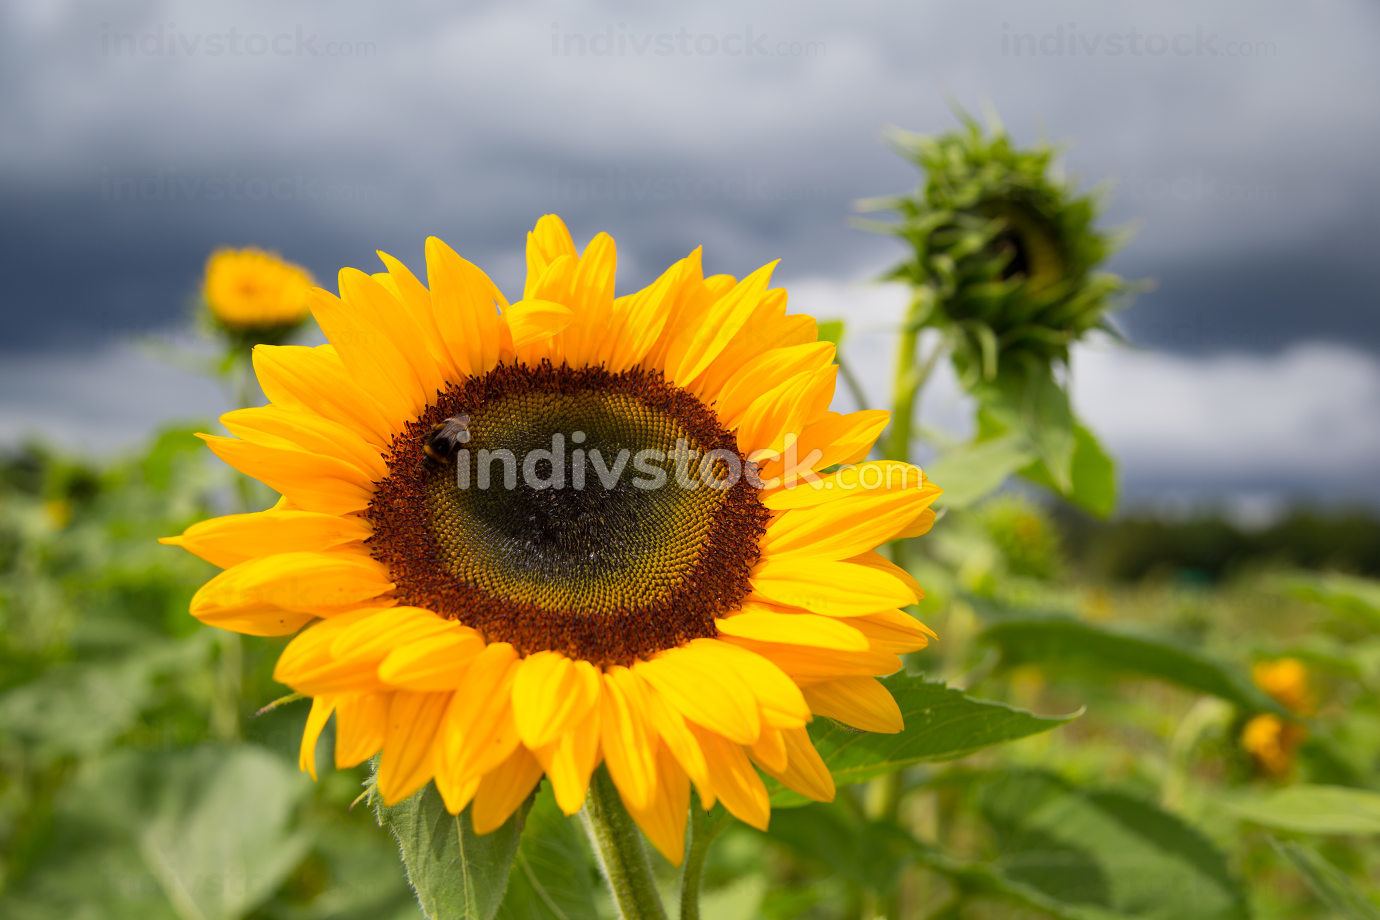 a big sunflower in a park